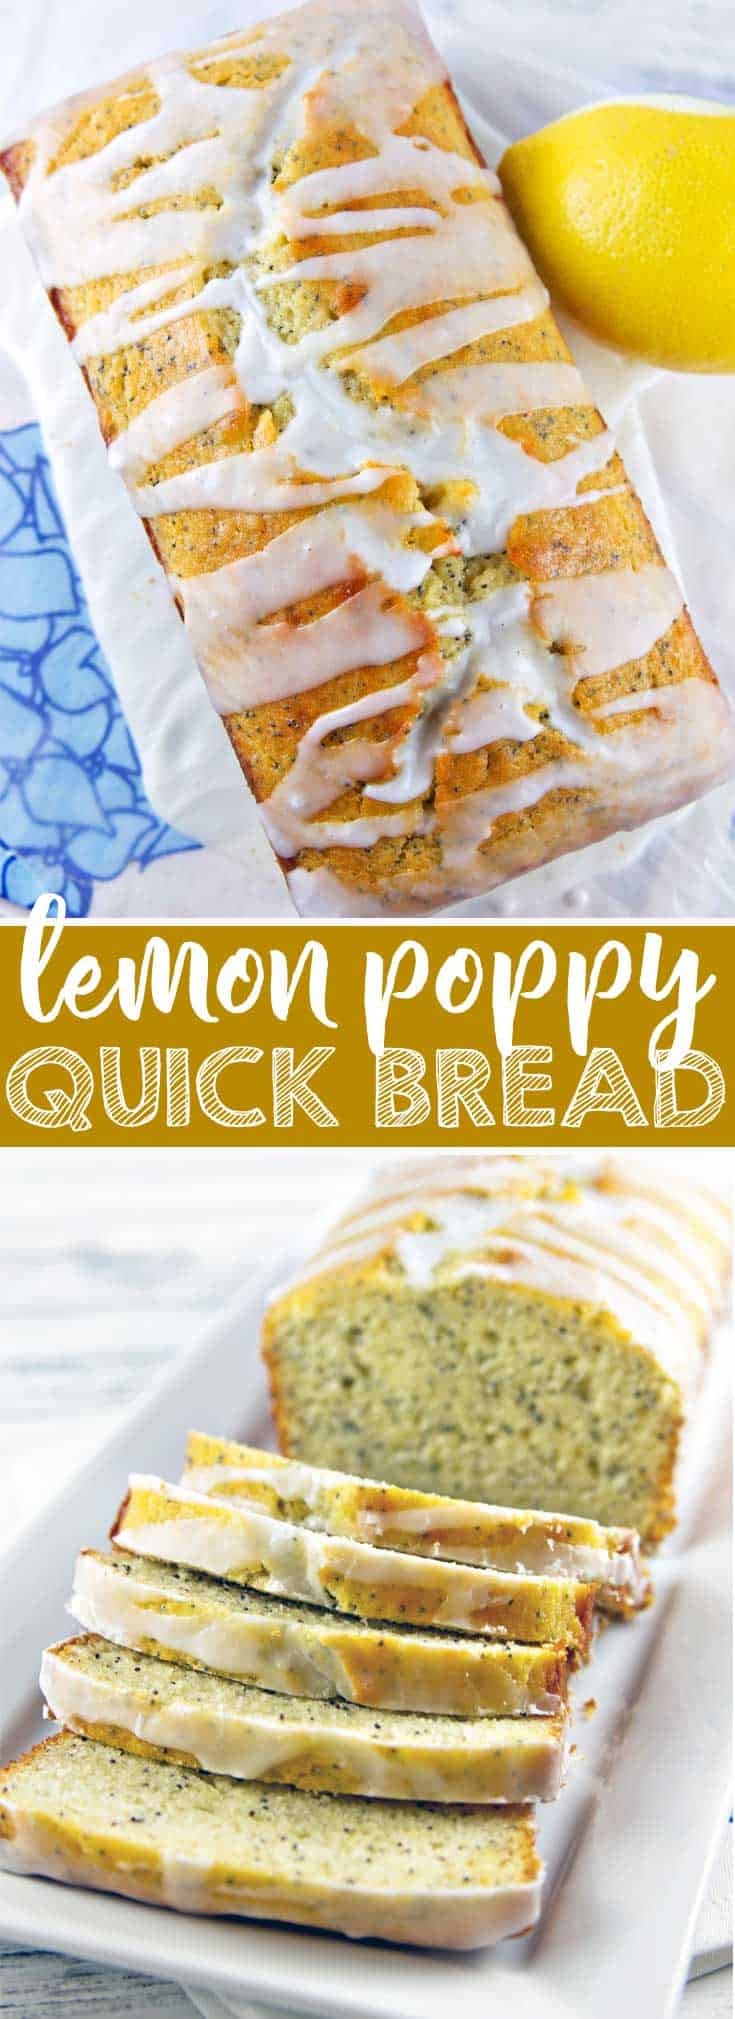 Lemon Poppy Quick Bread: a fresh take on a classic, this is more moist and lemony than your grandmother's lemon loaf. {Bunsen Burner Bakery} #quickbread #lemonpoppy #lemonloaf